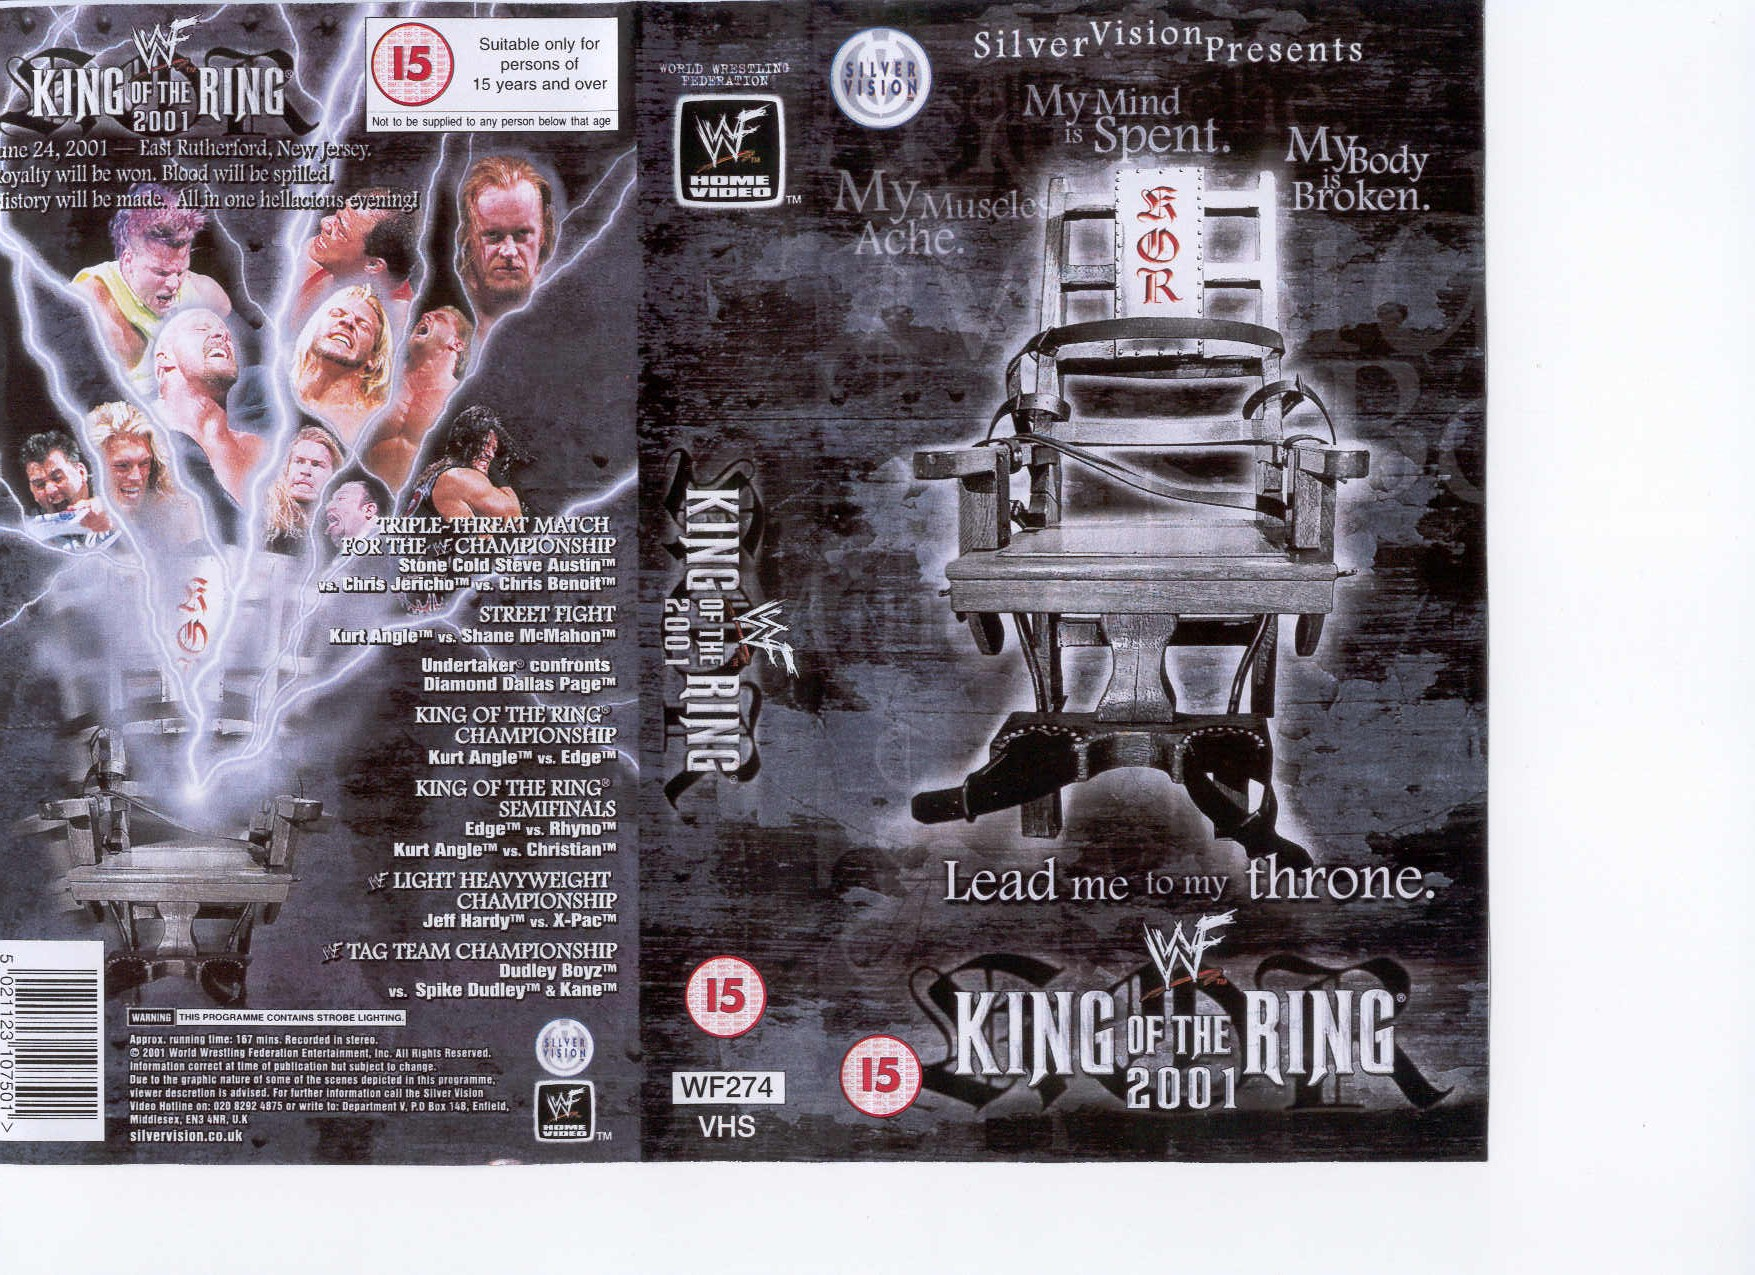 kingofthering2001